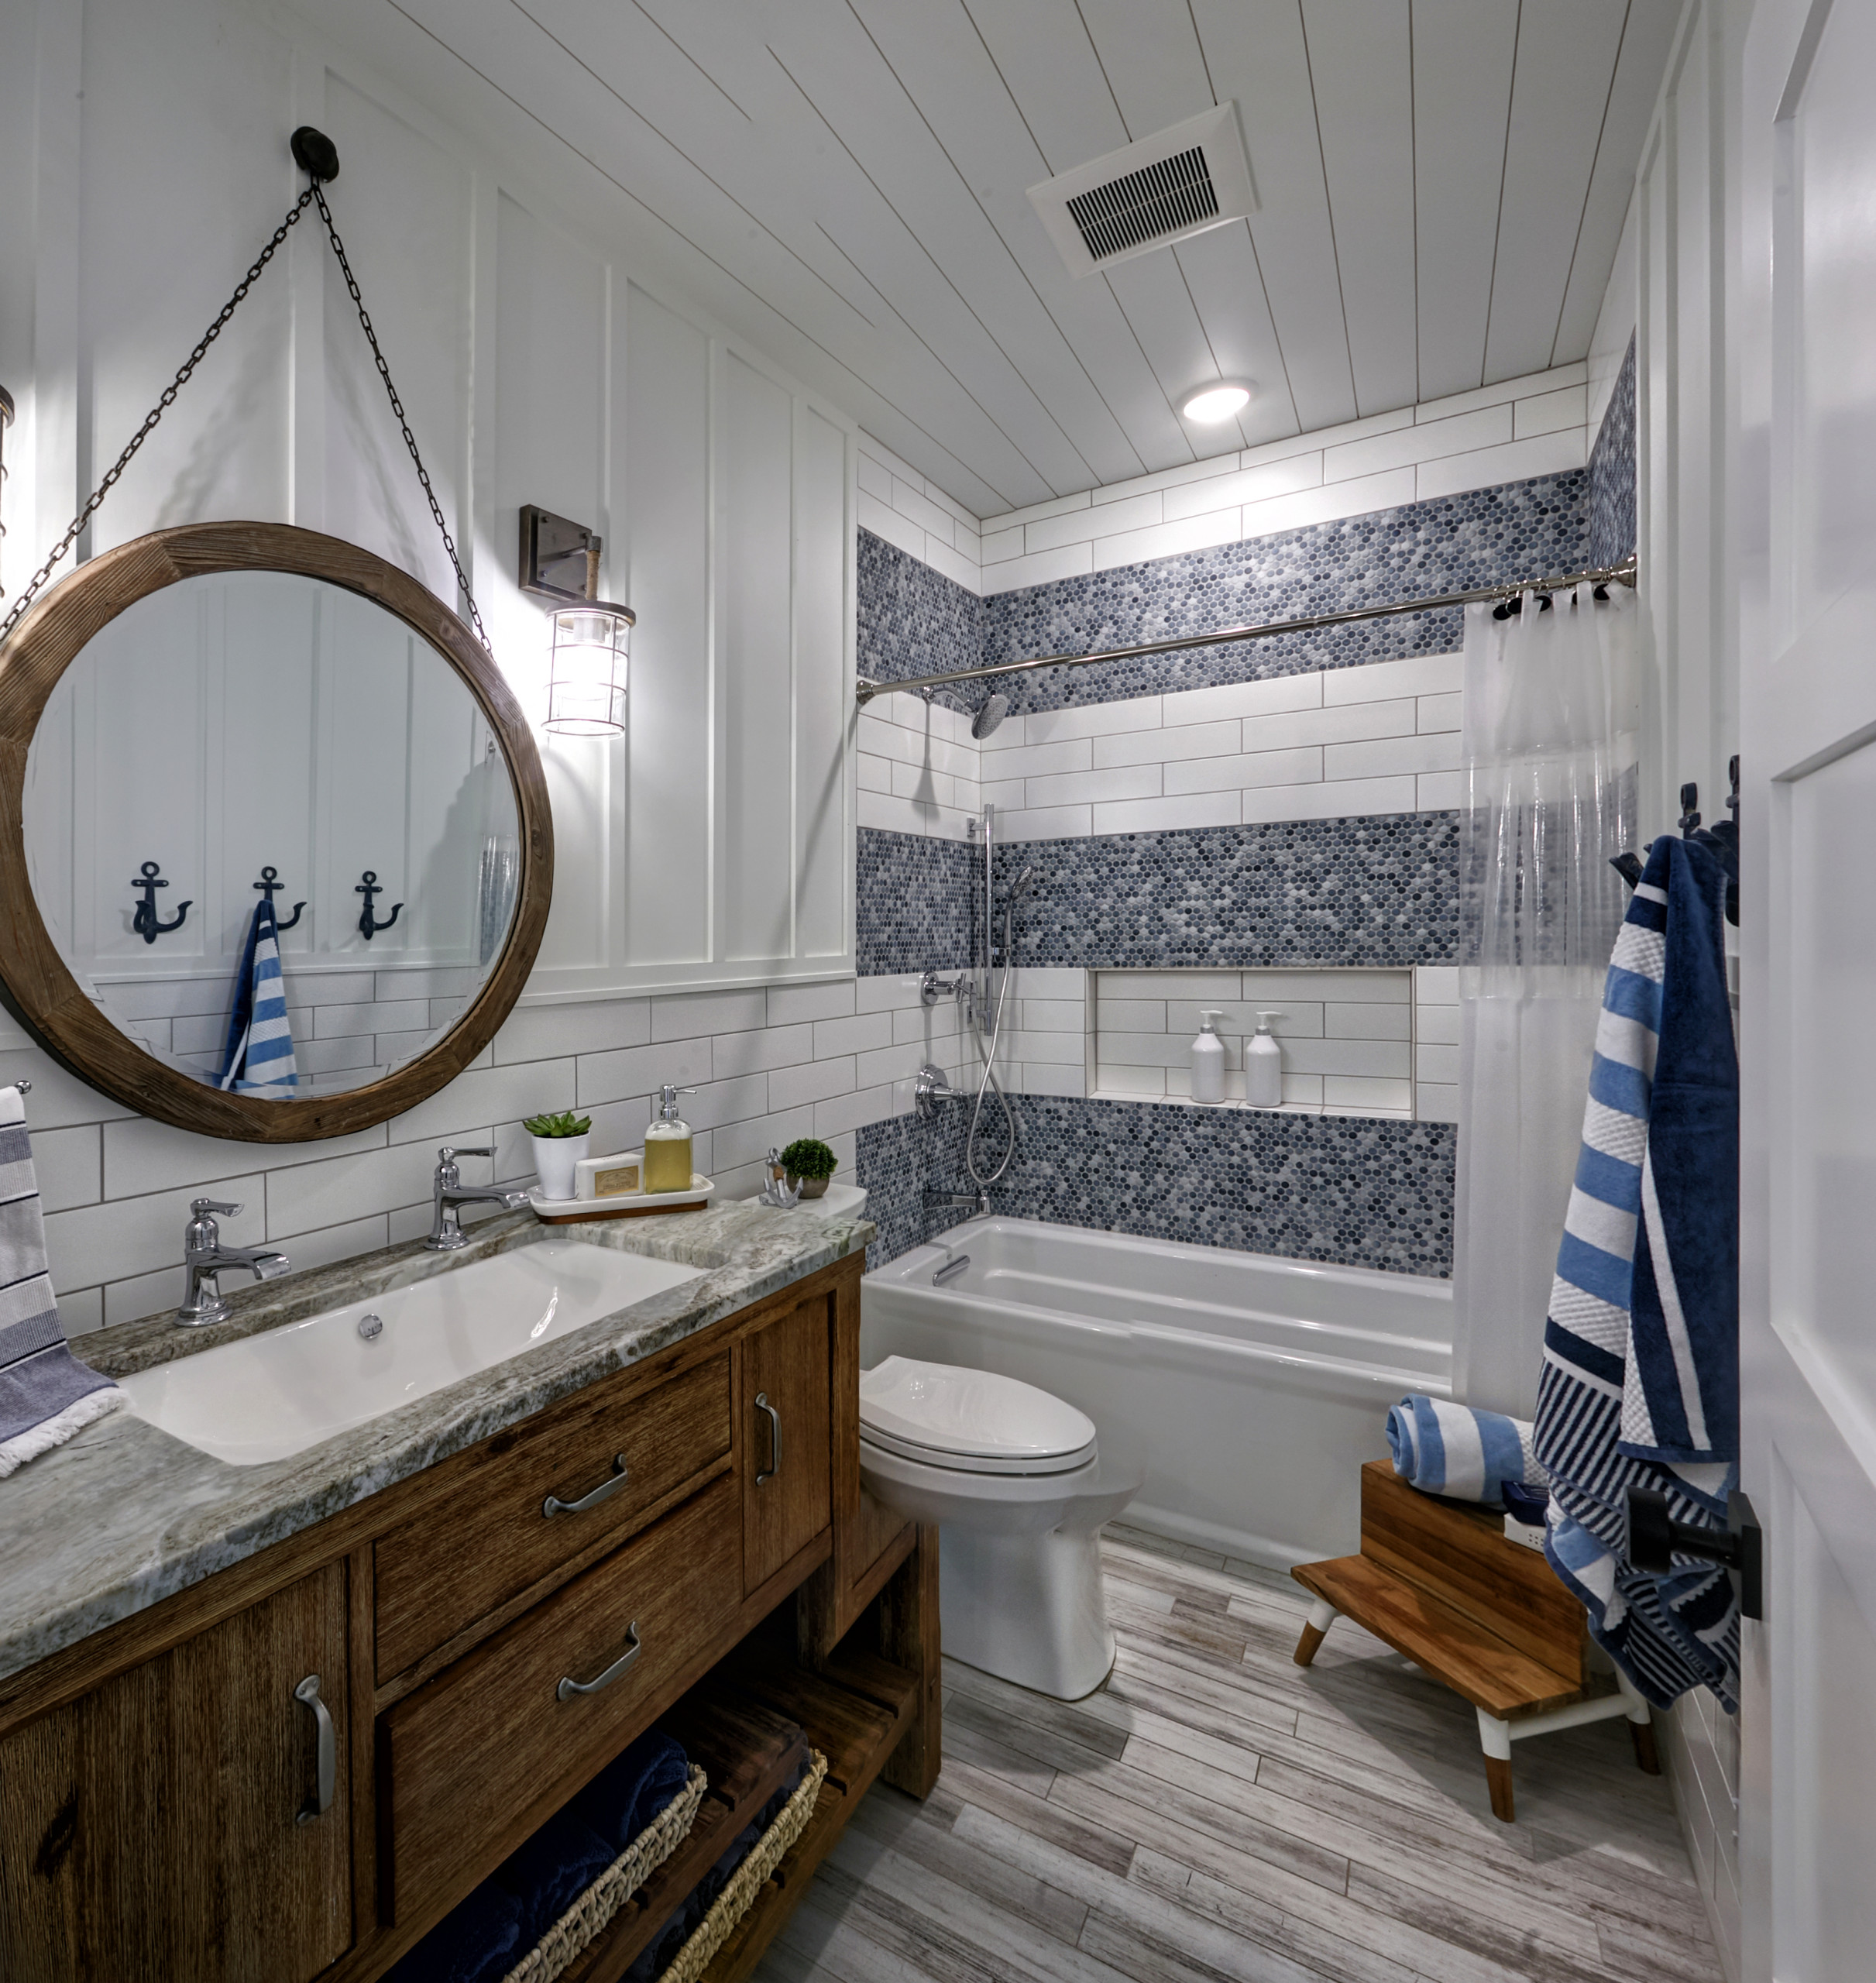 75 Beautiful Wall Paneling Bathroom Pictures Ideas February 2021 Houzz